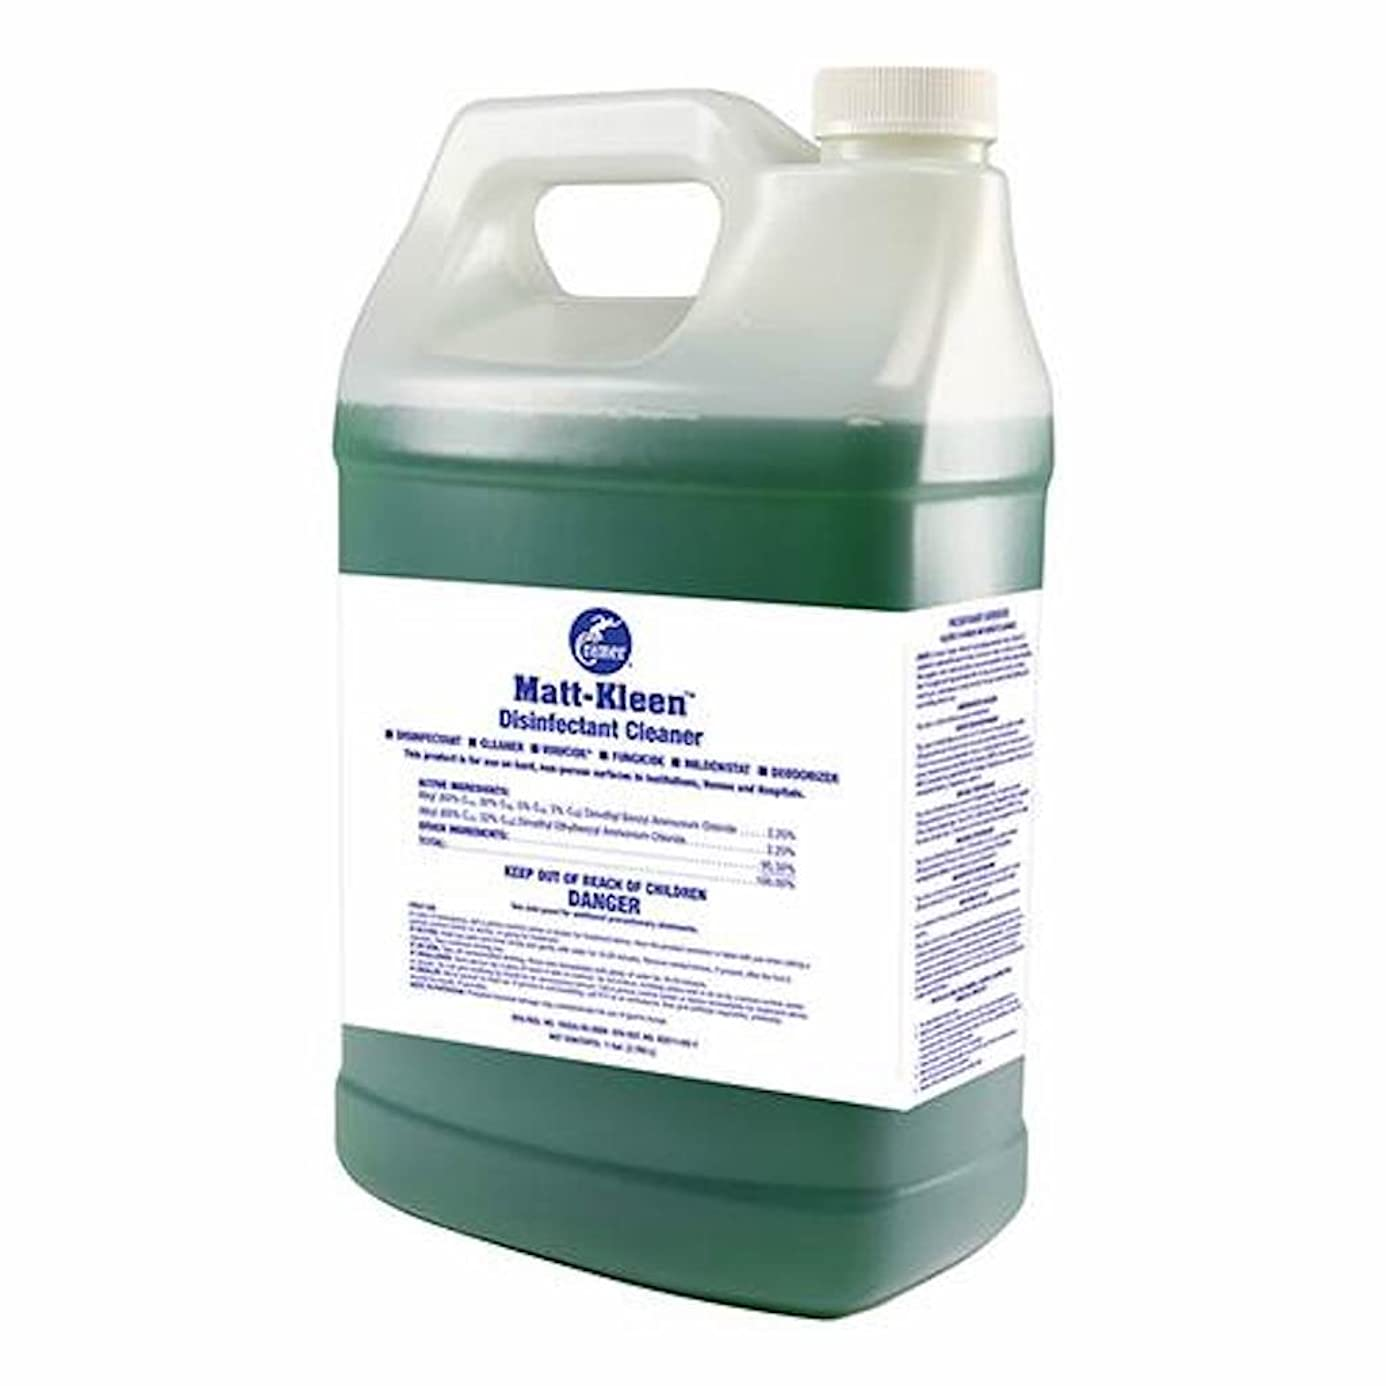 Cramer Matt-Kleen Hard-Surface Disinfectant Cleaner Concentrate for Wrestling and Gymnastic Mats, Training Tables, Shower Floors, One Gallon